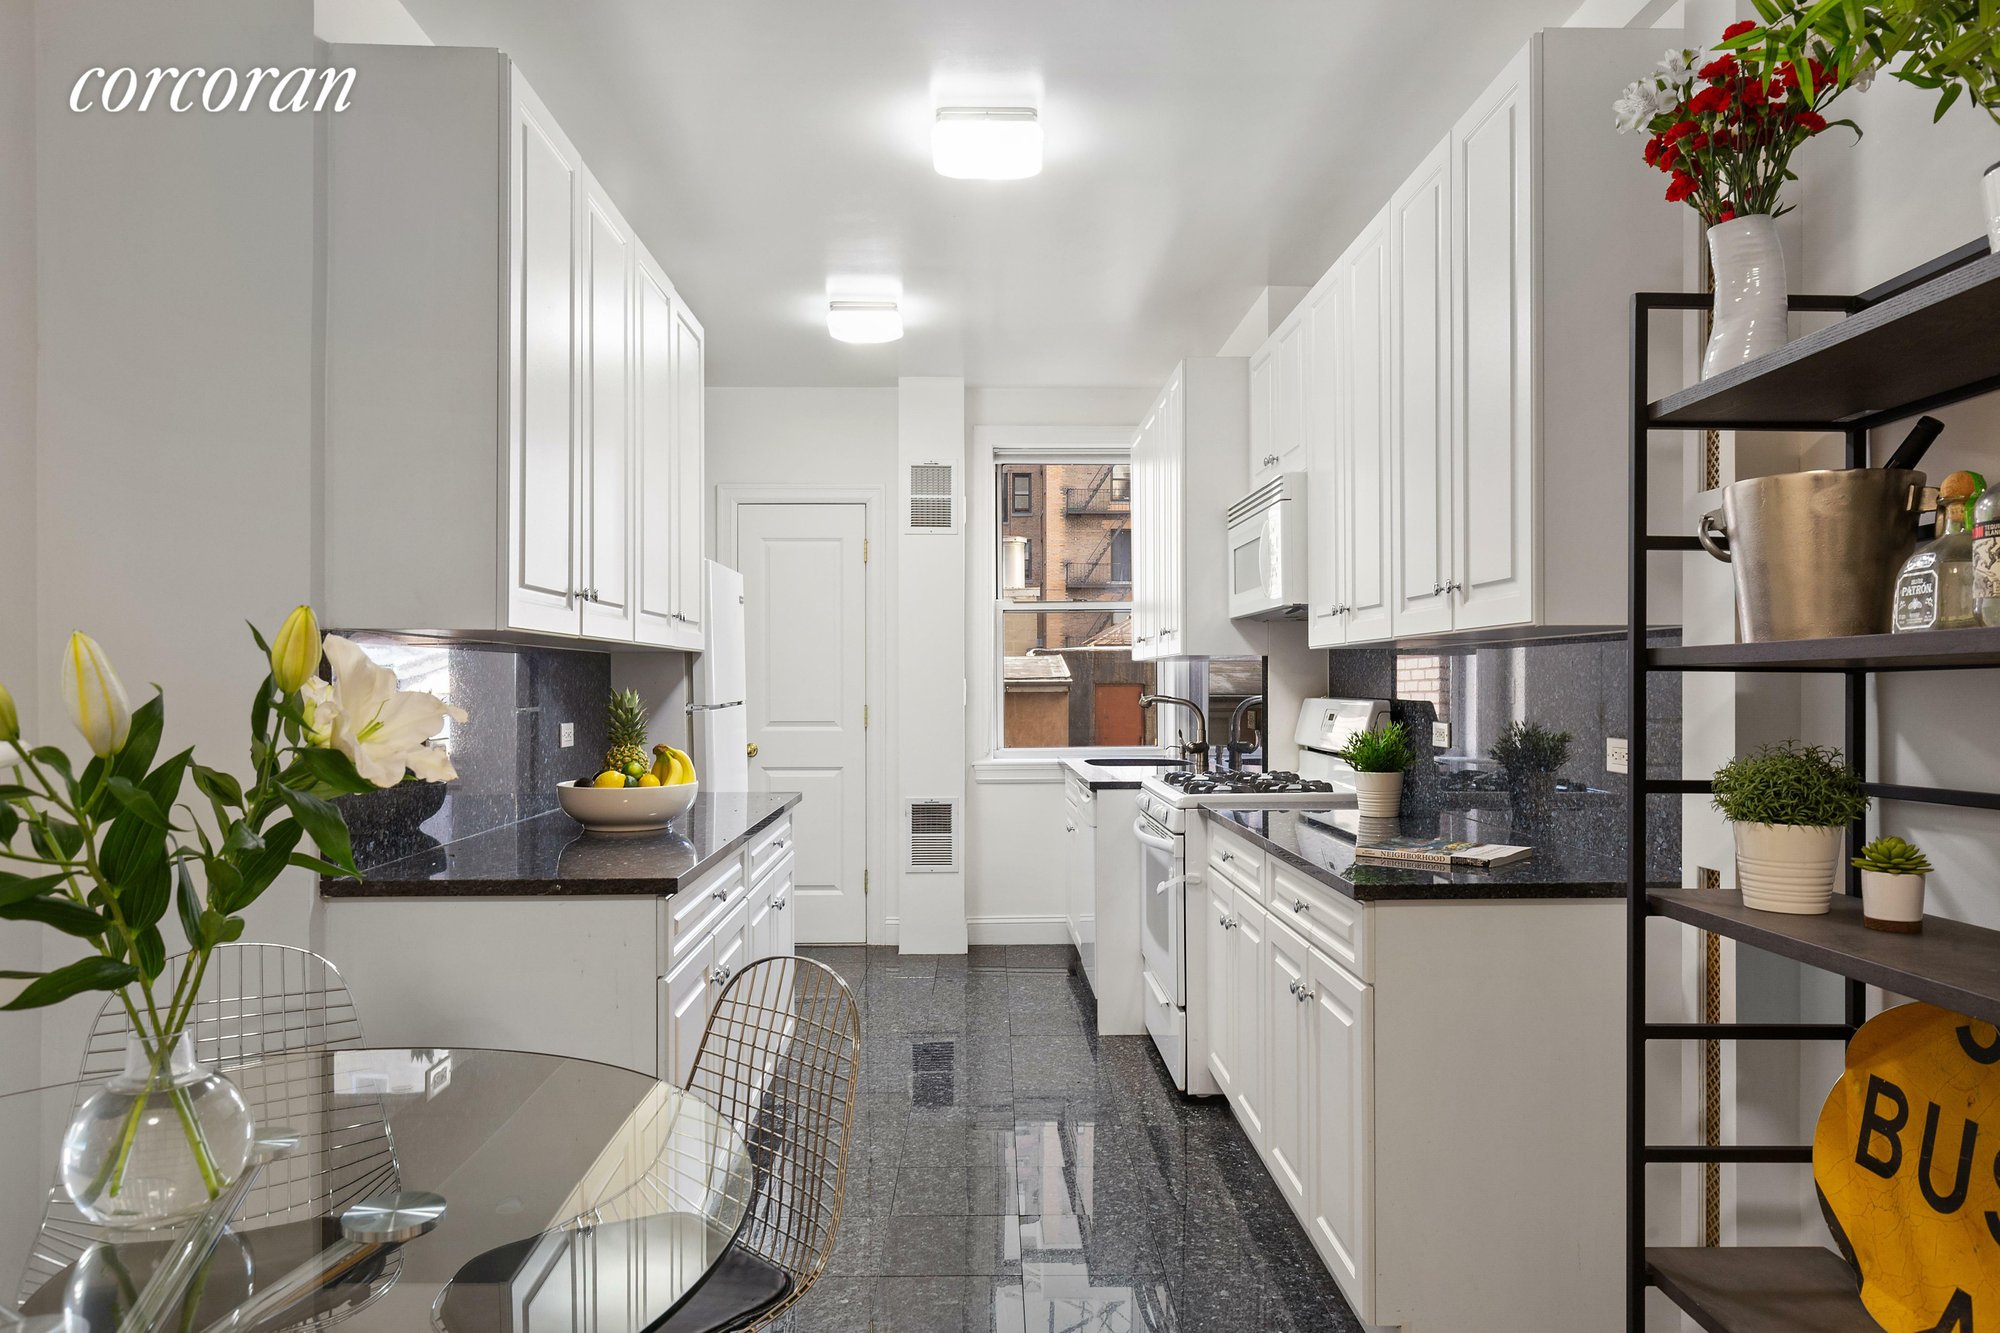 2 Bedrooms Apartment in New York City, NY, United States ...